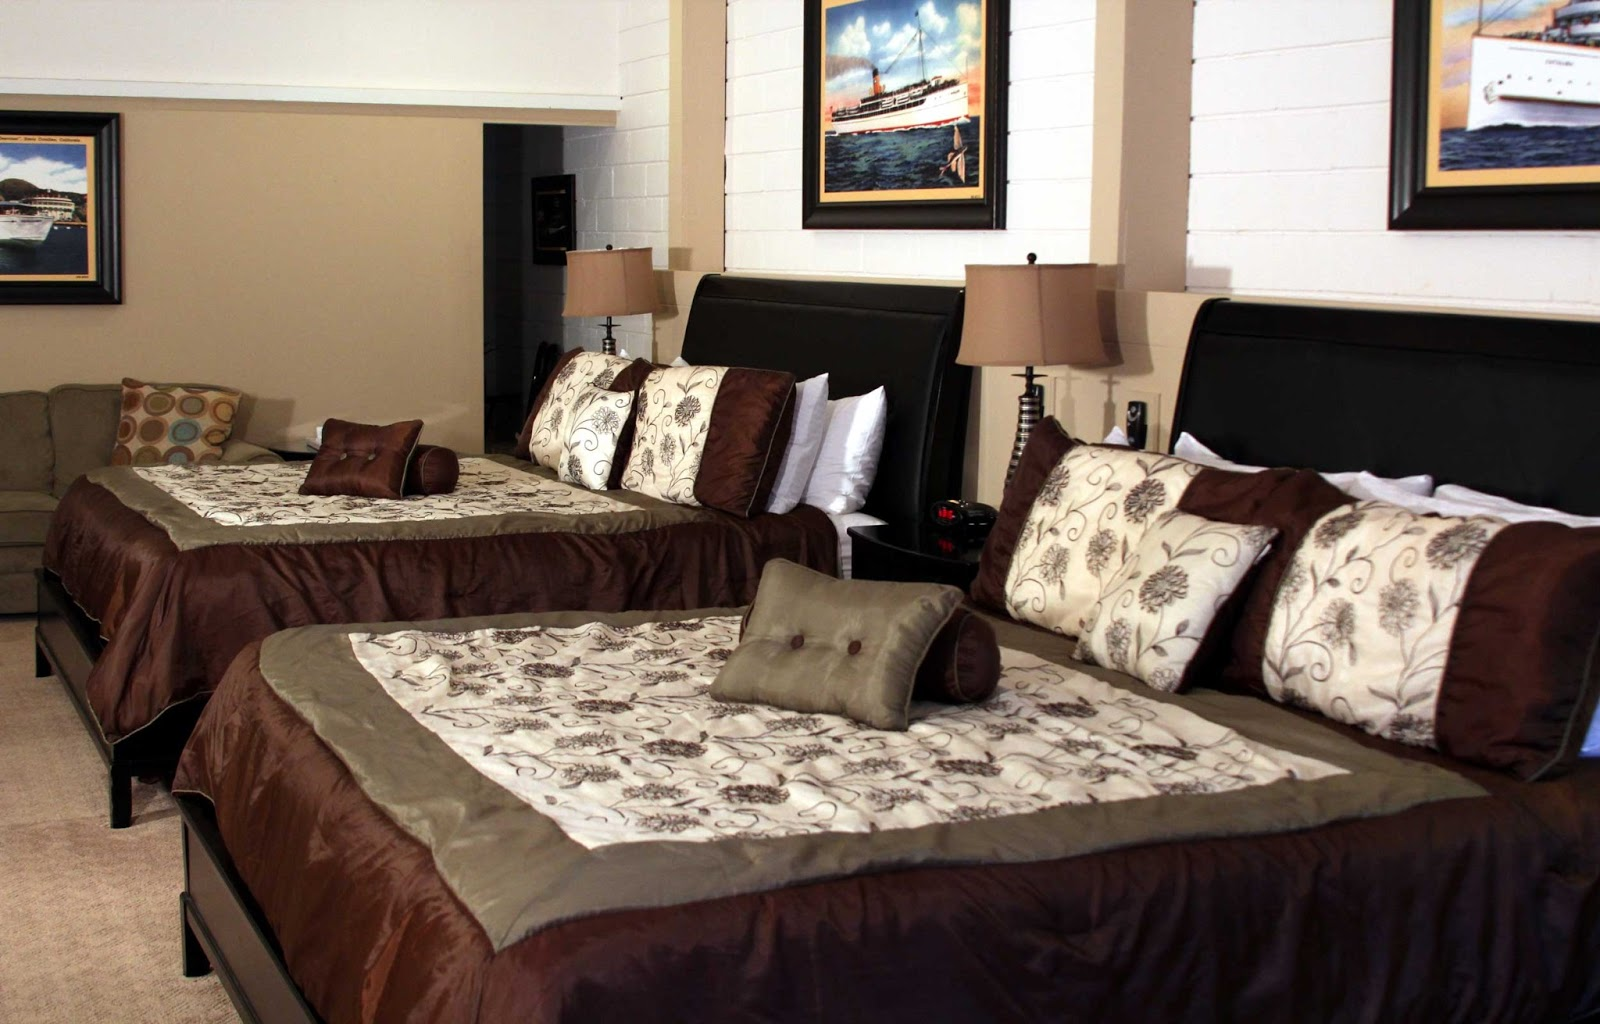 Hotel catalina catalina island large family rooms for Hotels with family rooms for 5